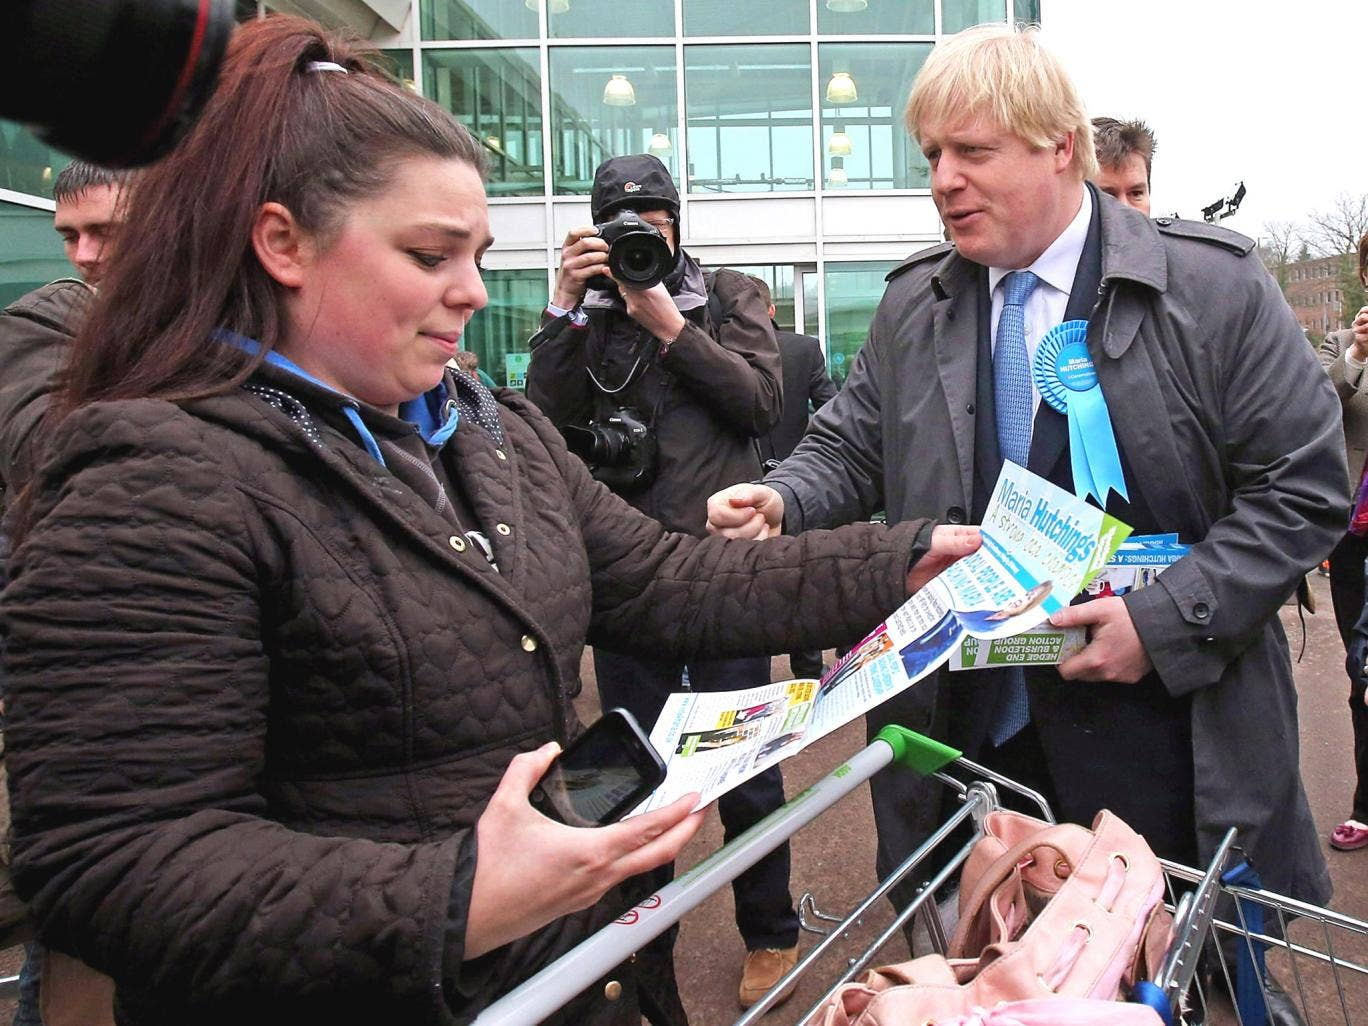 Boris Johnson speaks to a shopper in Eastleigh in support of Conservative candidate Maria Hutchings